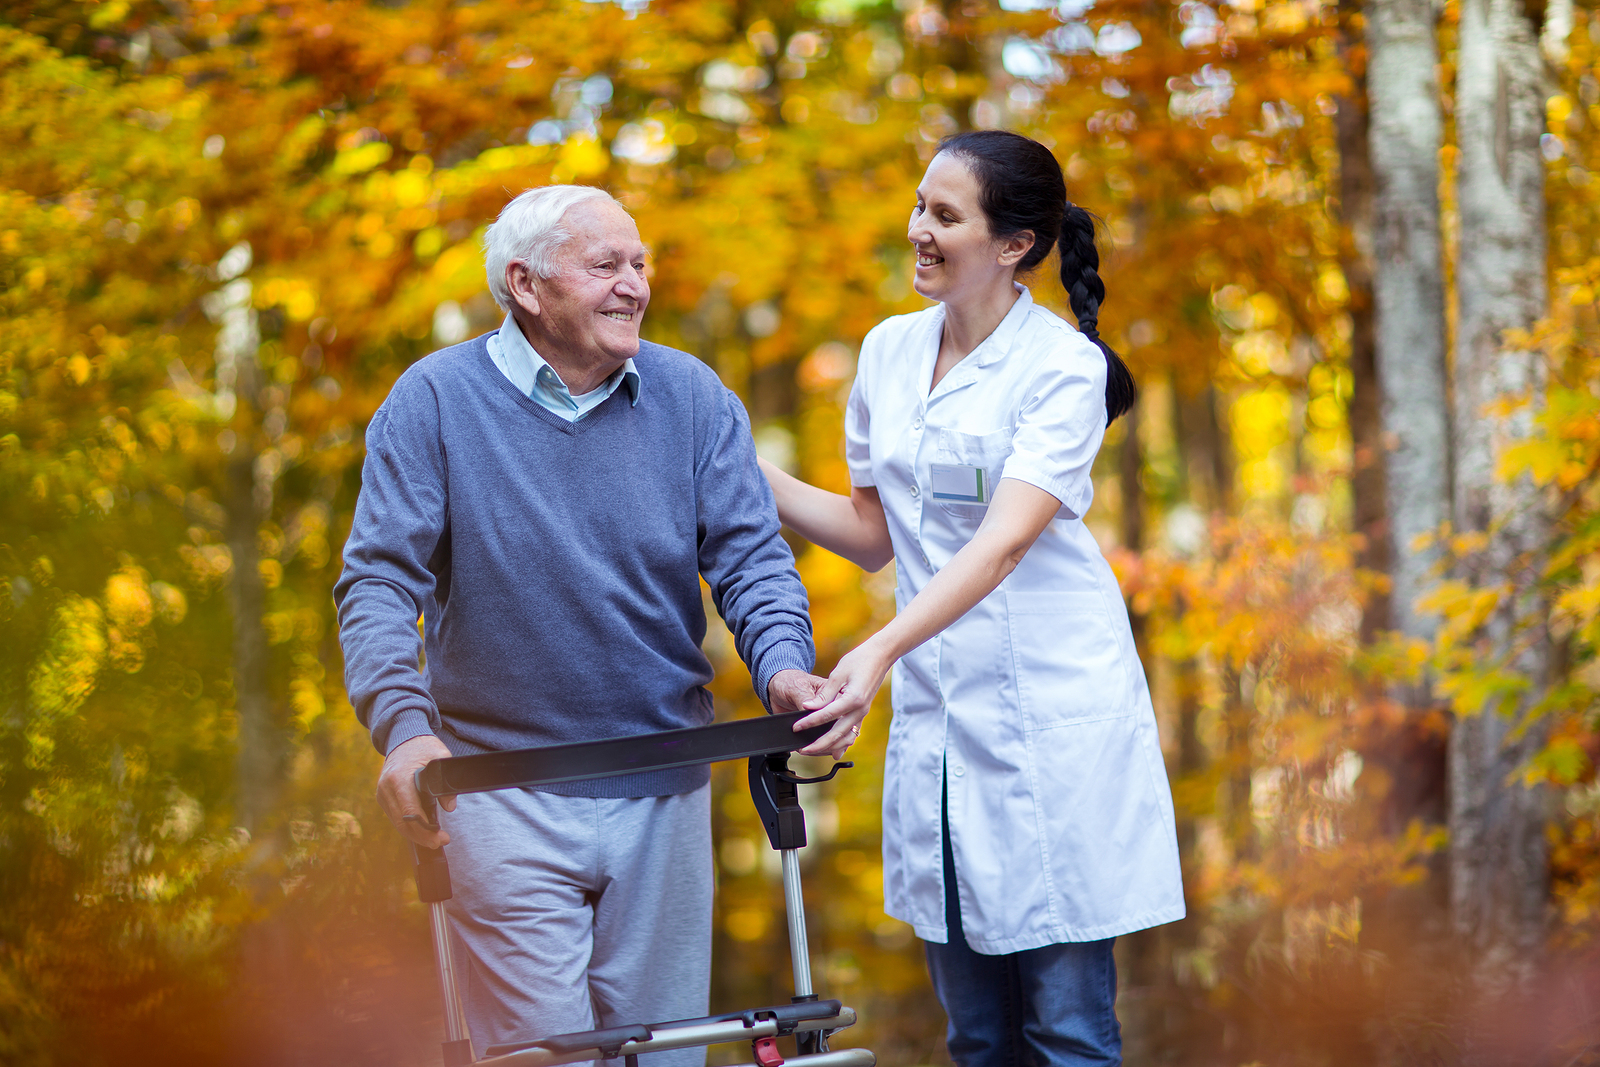 Elderly Care in Folsom CA: Staying Independent